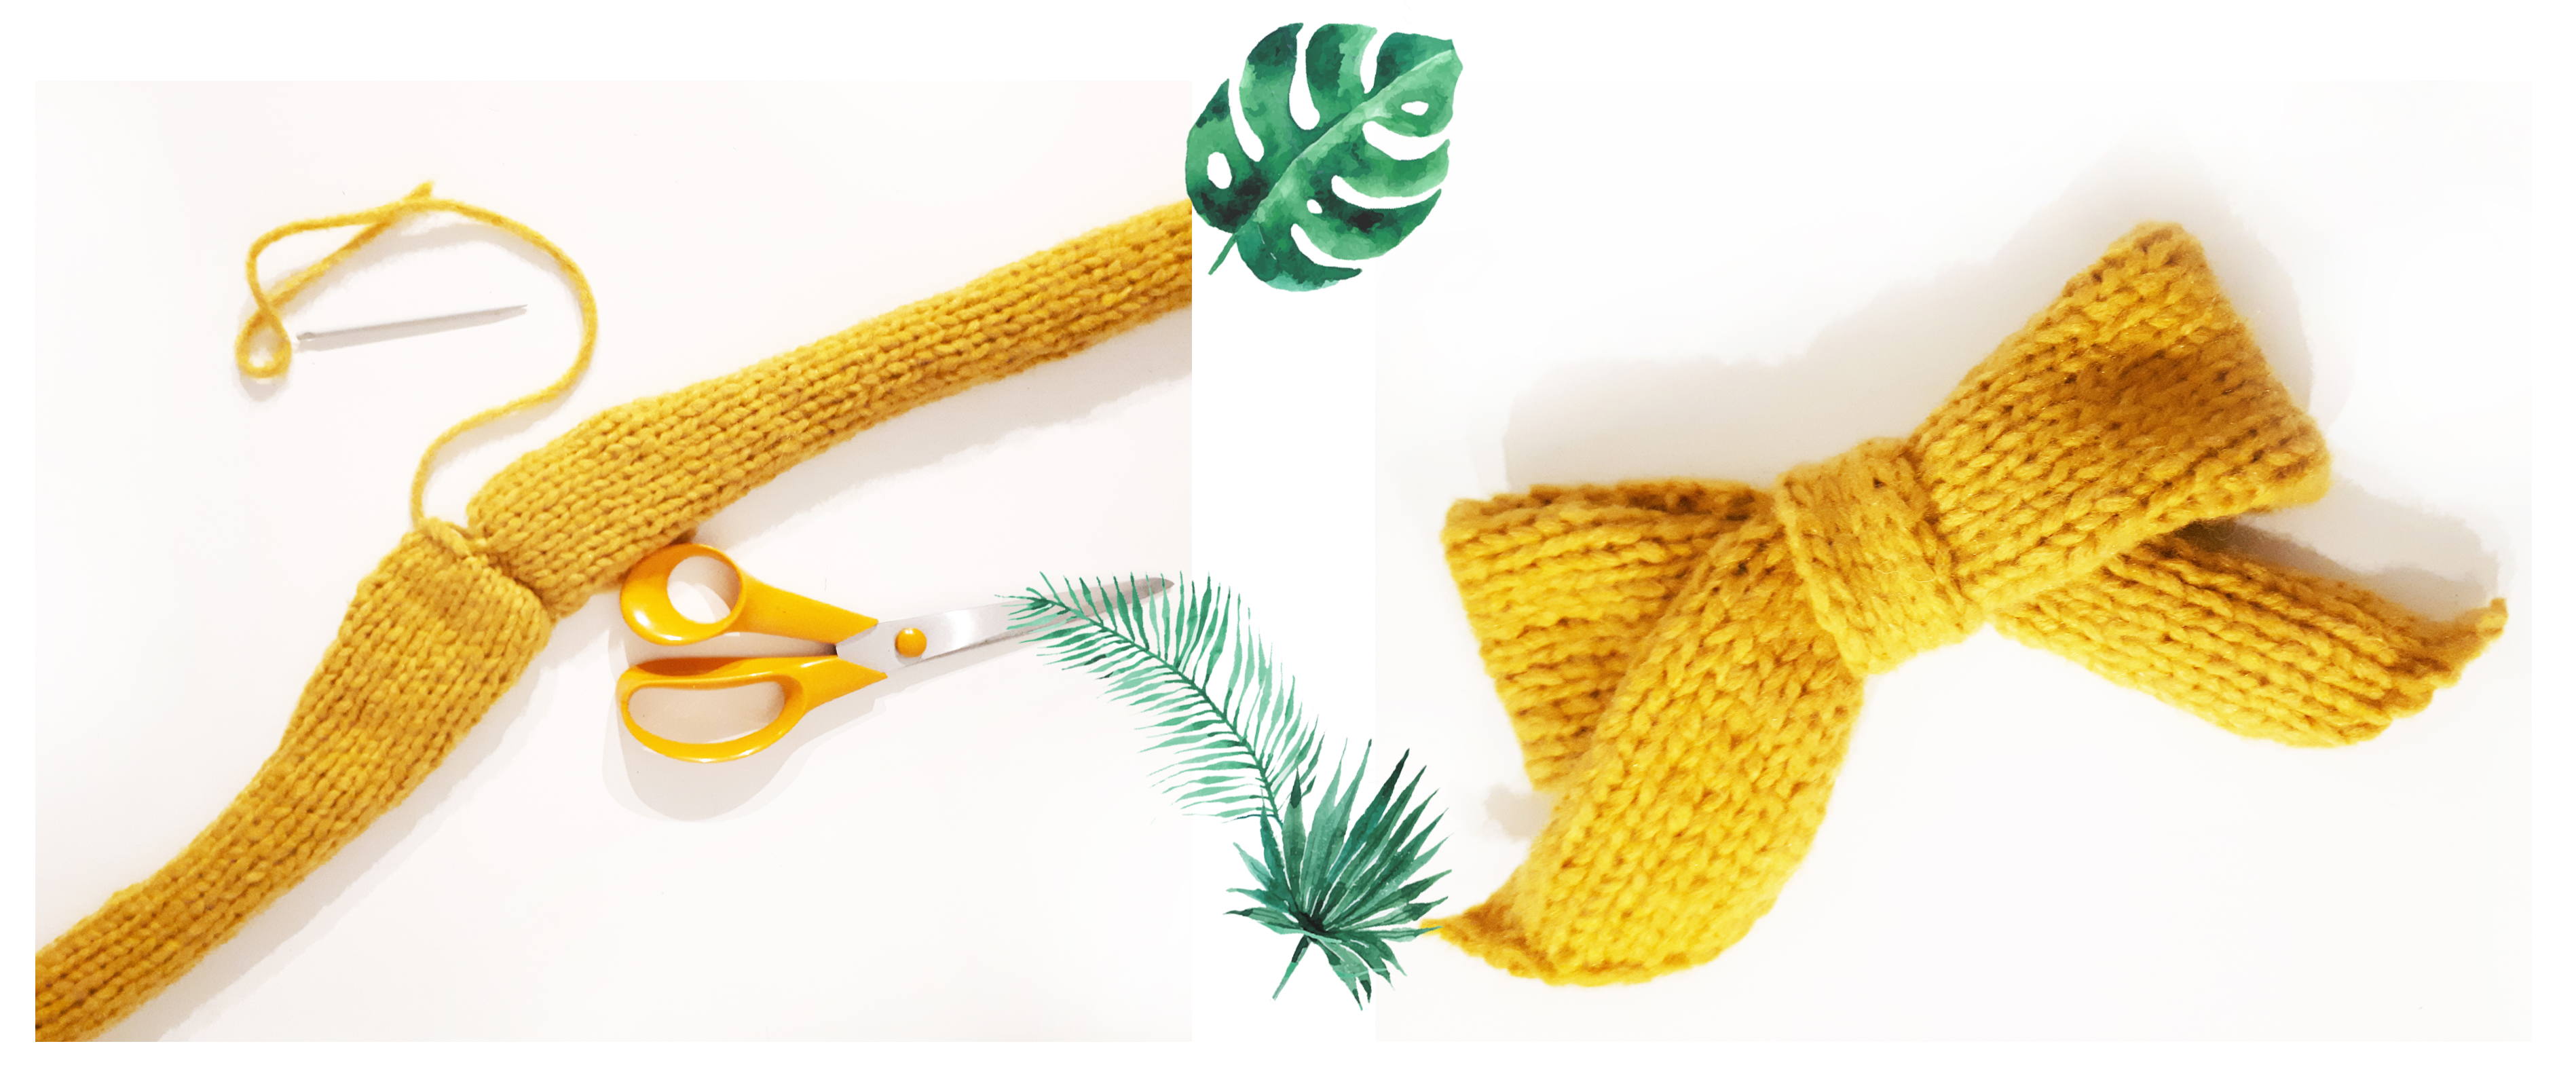 DIY-noeud-laine-tricot-etape-5-6-Cactus-and-Style